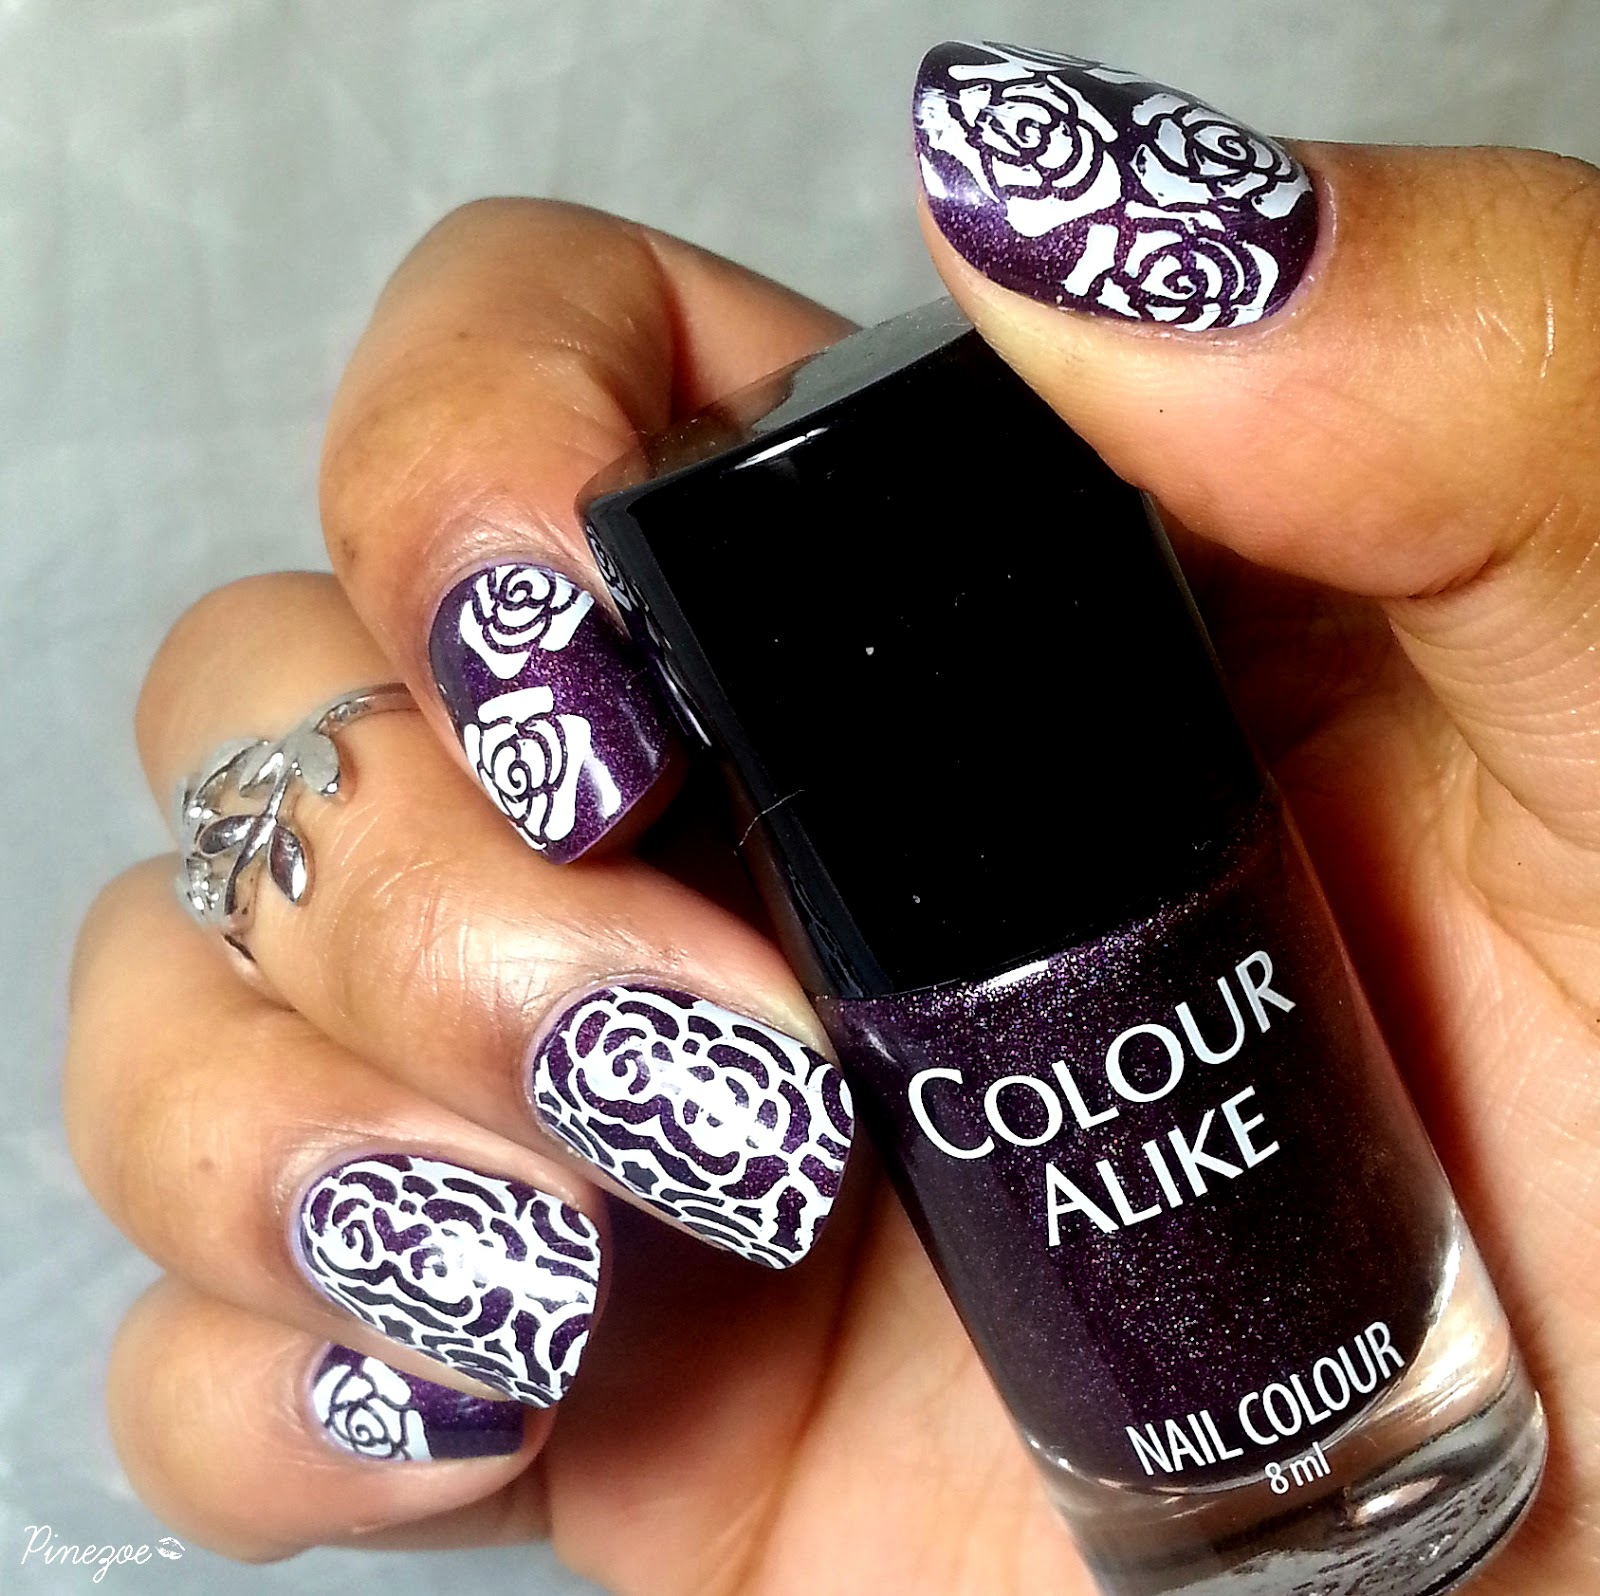 Colour Alike 502 & Stamping Roses BP 03